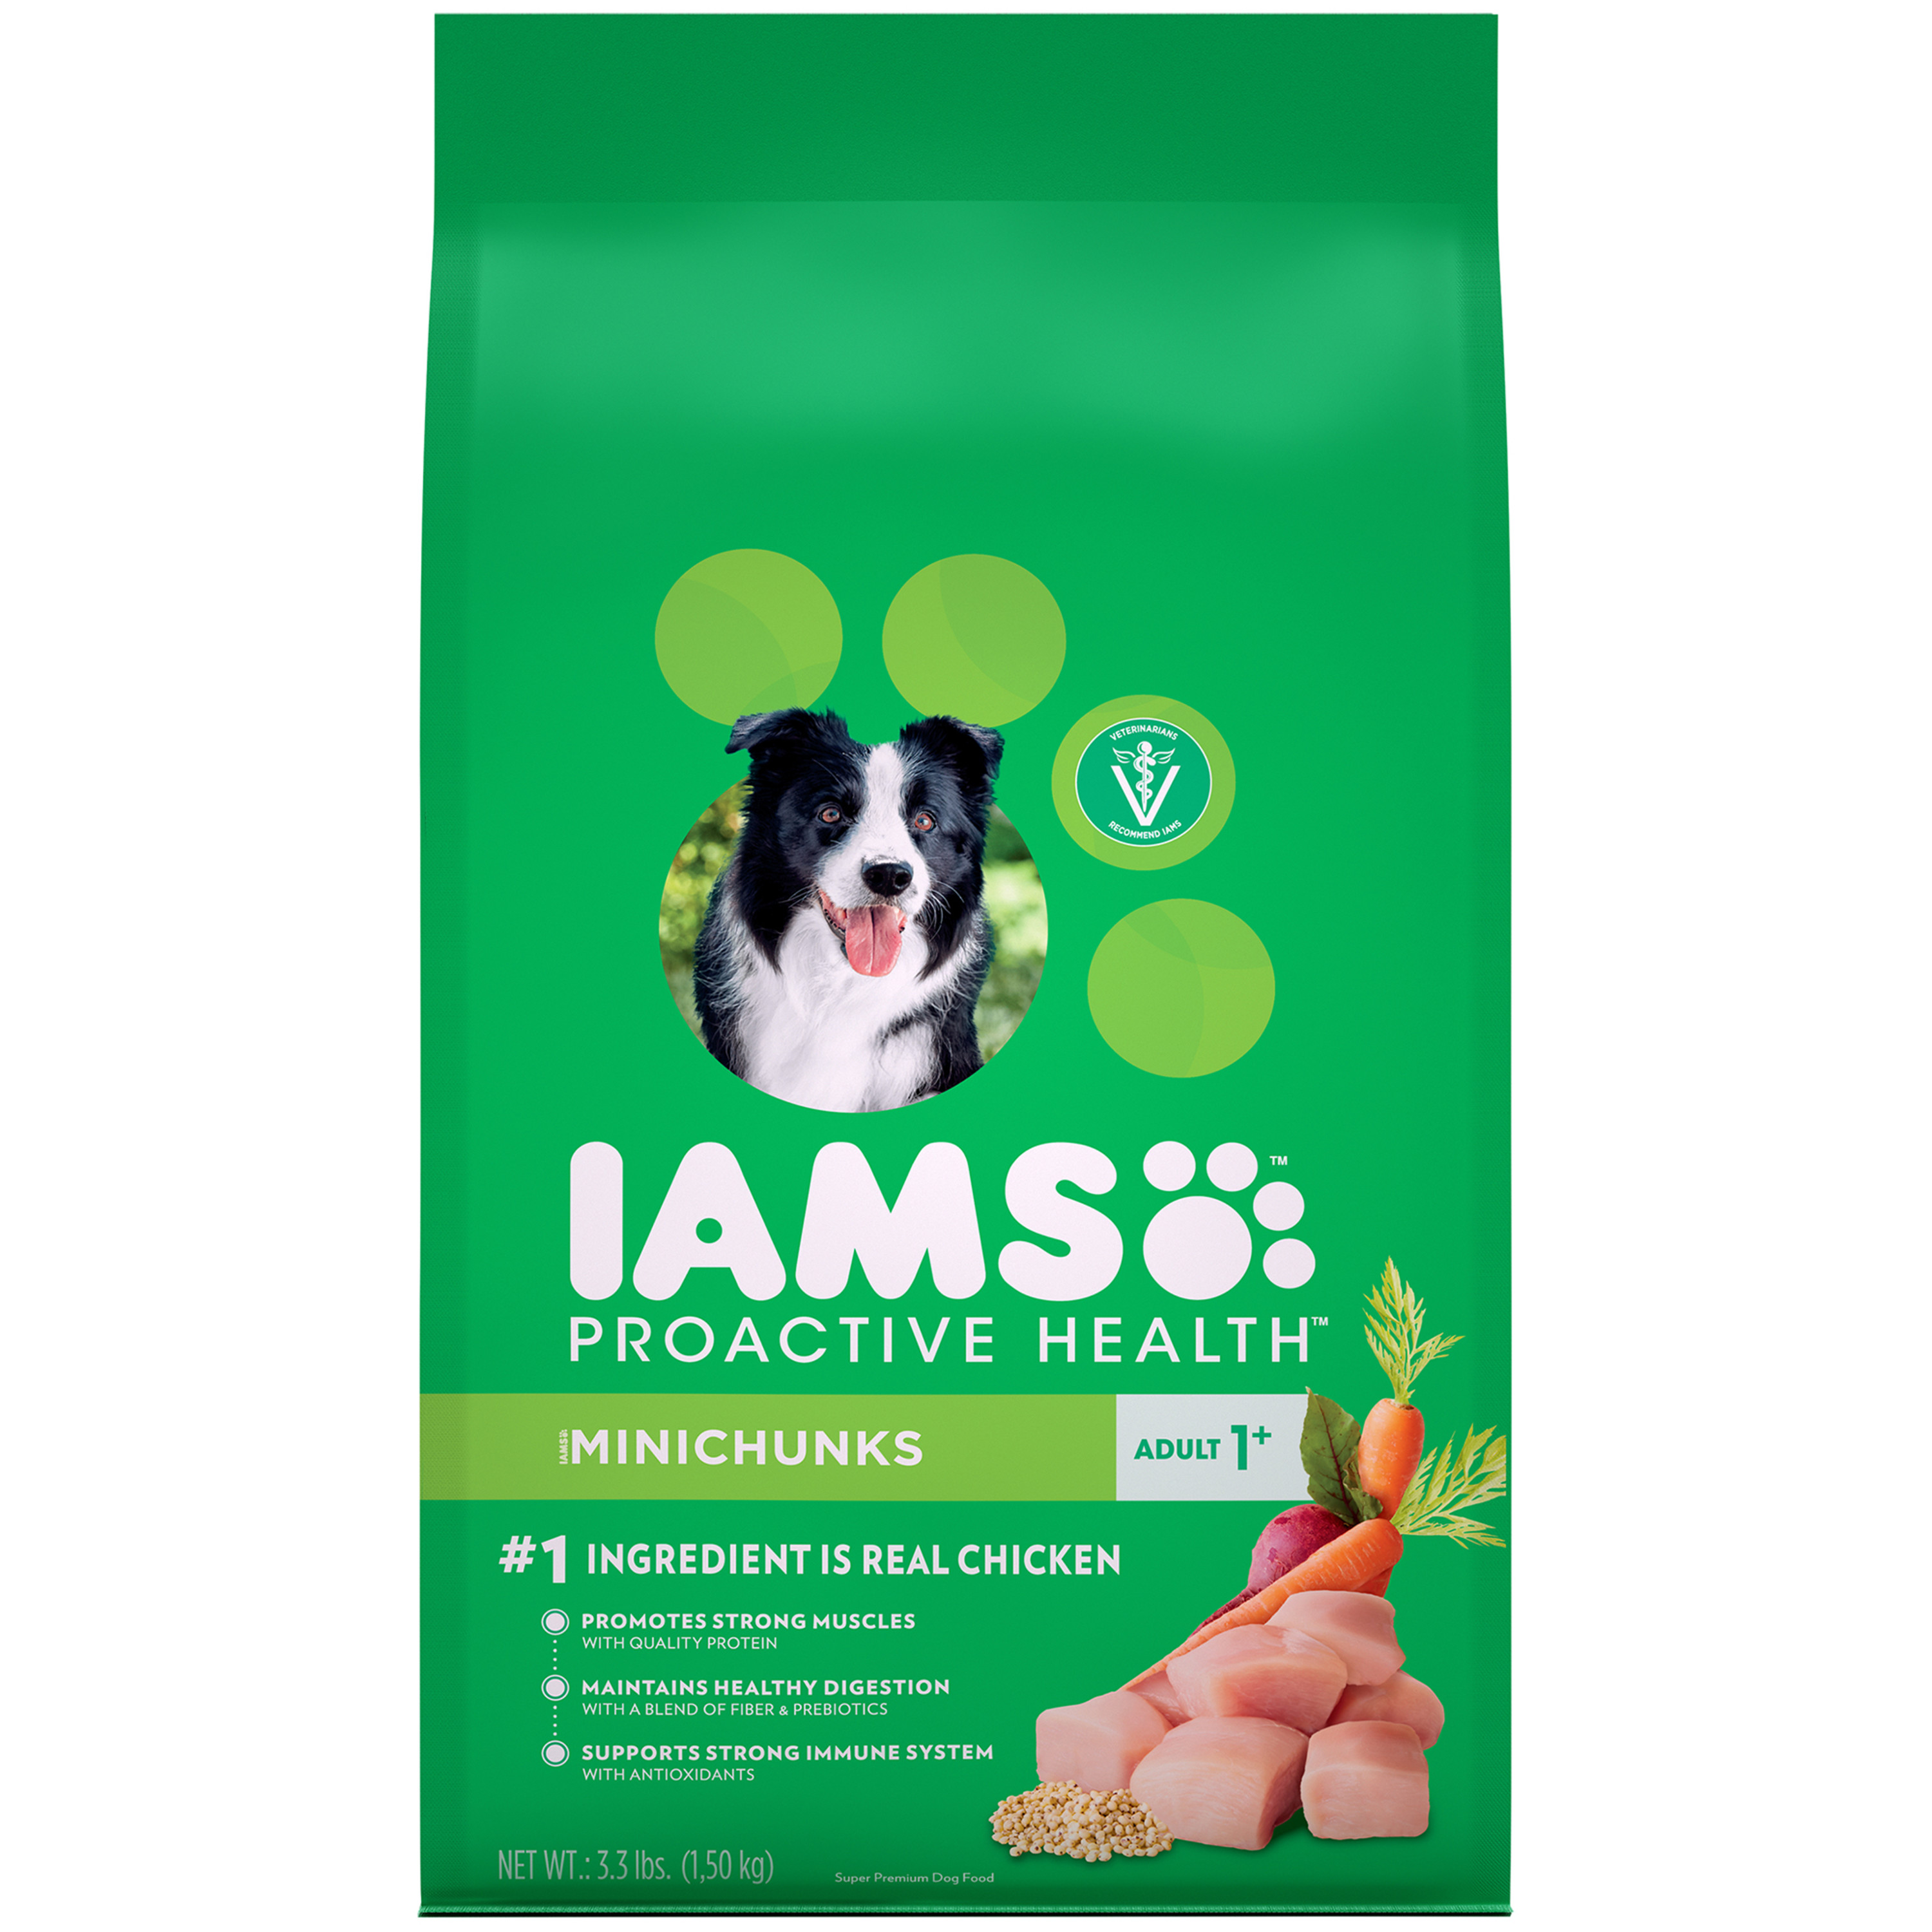 IAMS ProActive Health Minichunks Dry Dog Food for All Dogs – Chicken, 3.3 Pound Bag